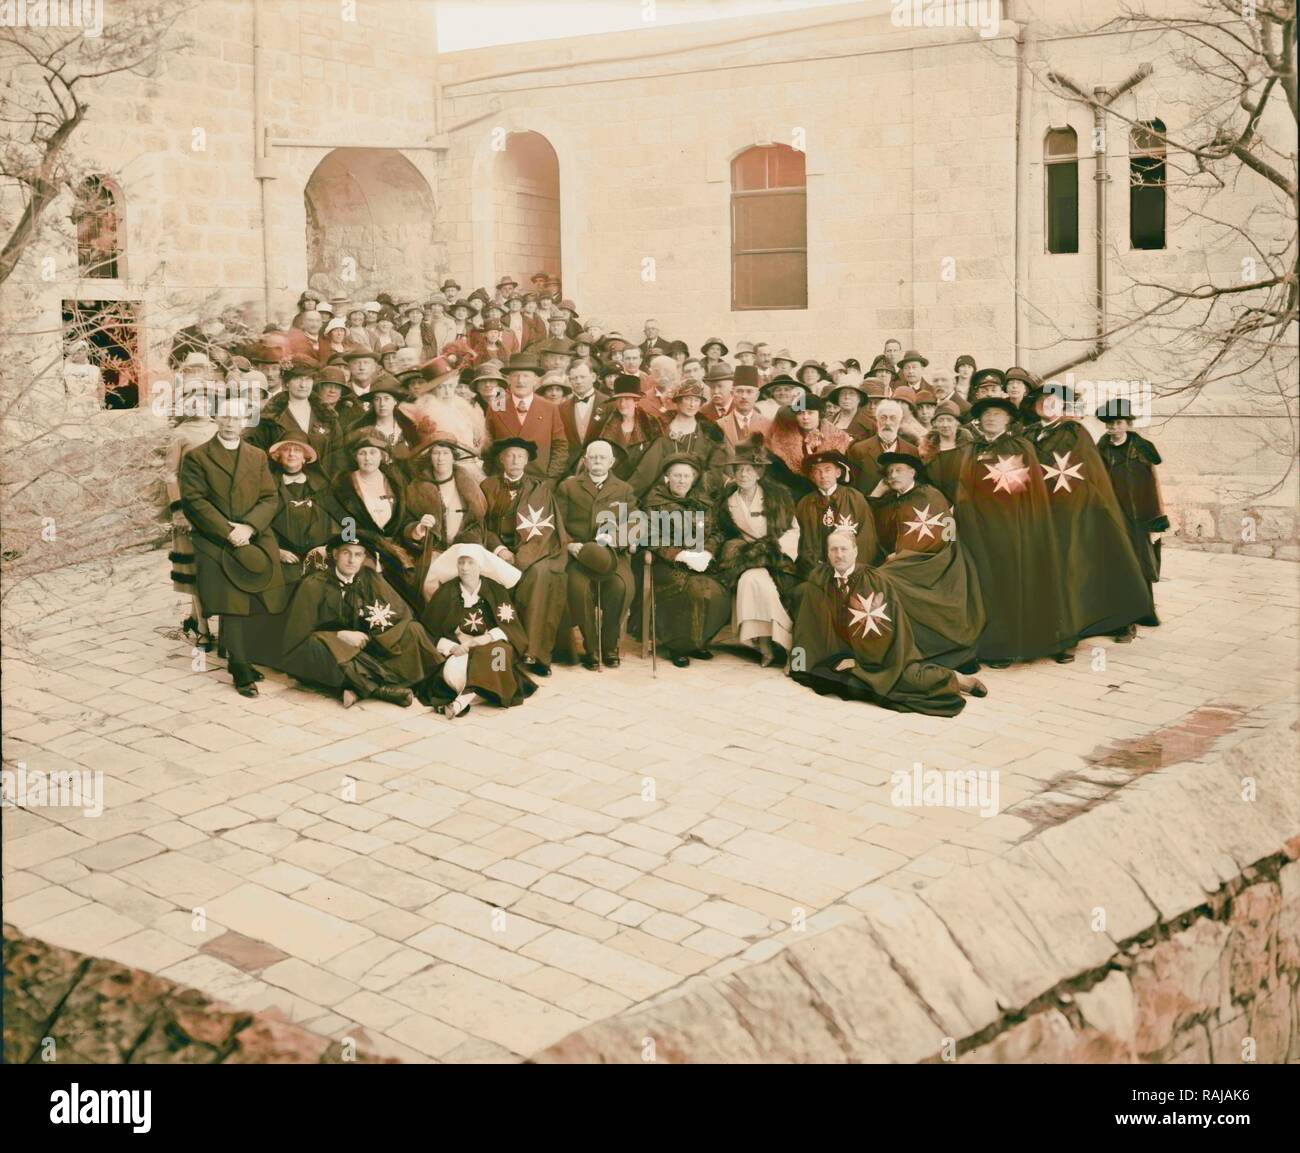 Entire staff, Ophthalmic Hospital 1898, Middle East, Israel. Reimagined by Gibon. Classic art with a modern twist reimagined - Stock Image